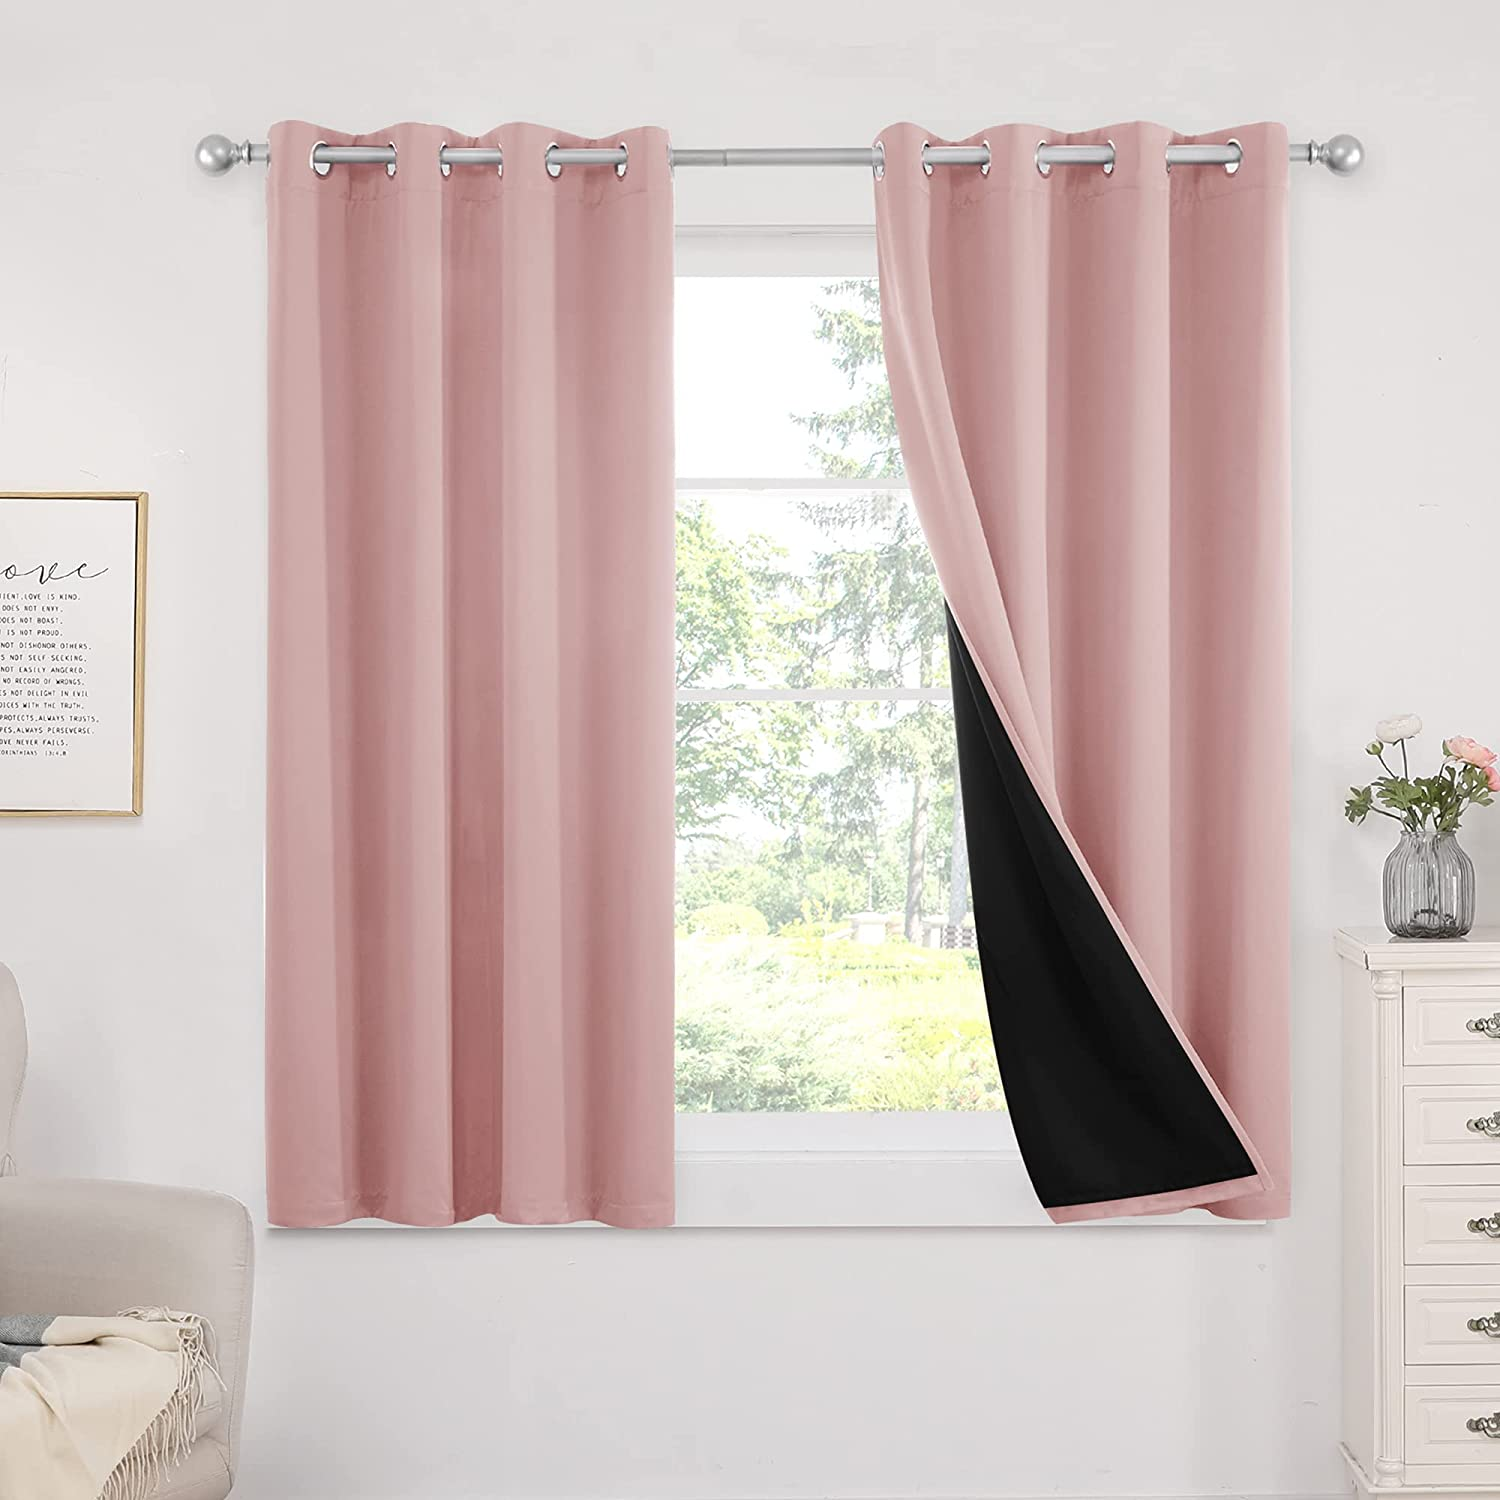 Deconovo Lined 100% Blackout Curtains Pink Thermal Insulated Doubled Window Drapes Grommets Light Blocking Room Curtains for Bedroom Living Room Kitchen, 2 Panels, Each 52x63, Coral Pink